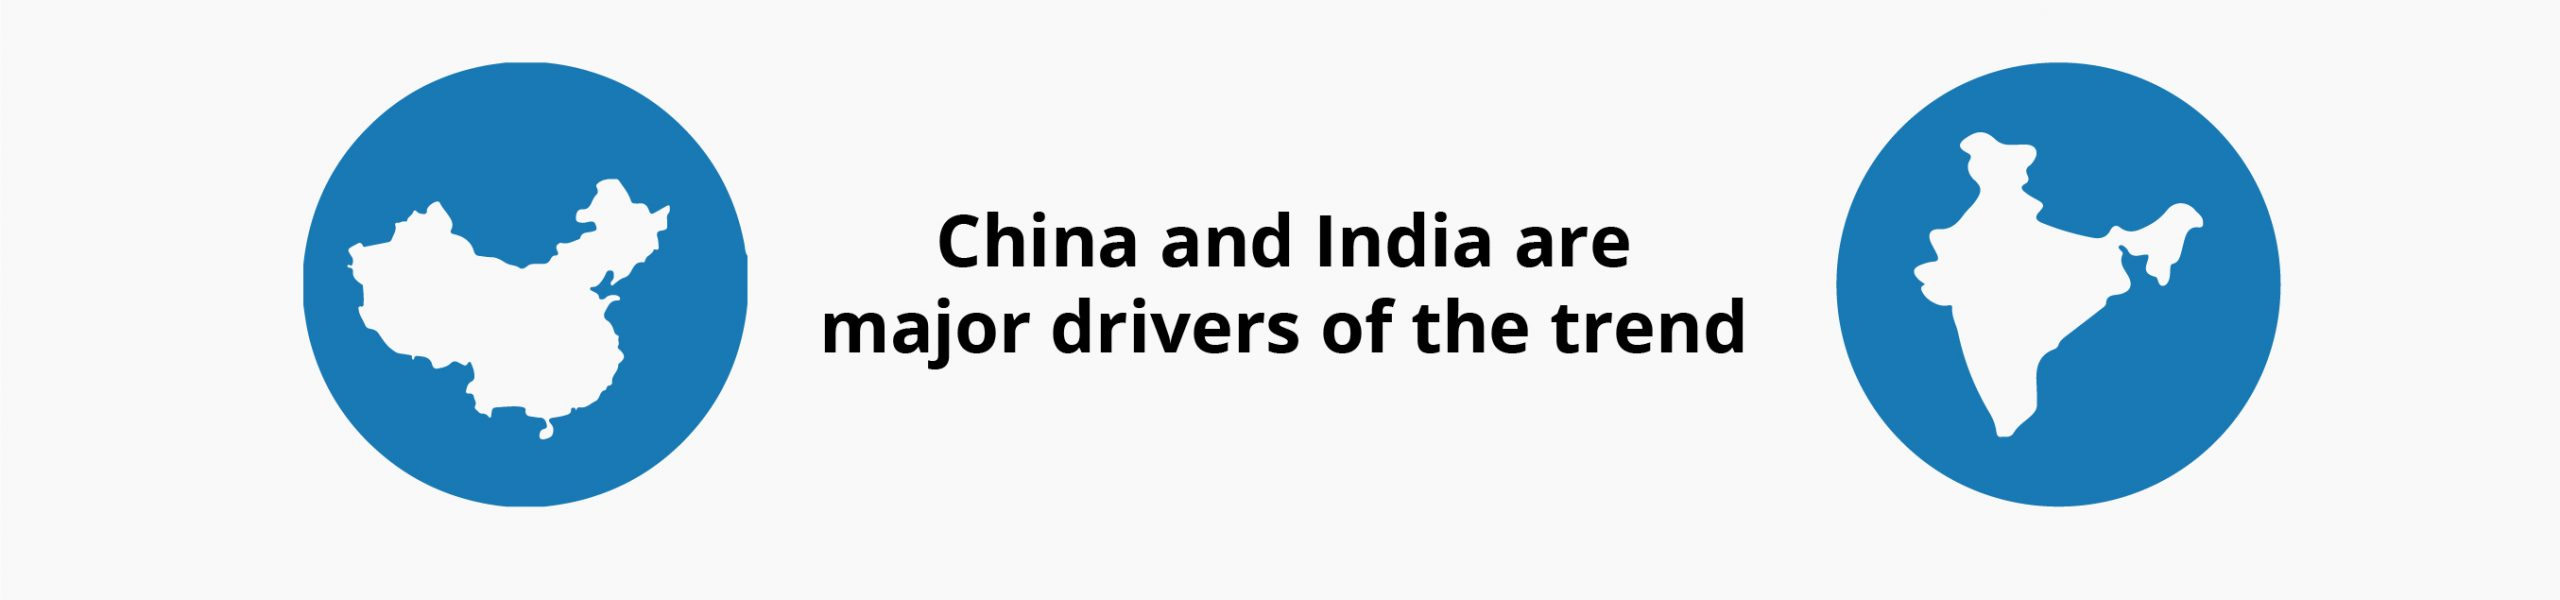 China and India are major drivers of the trend